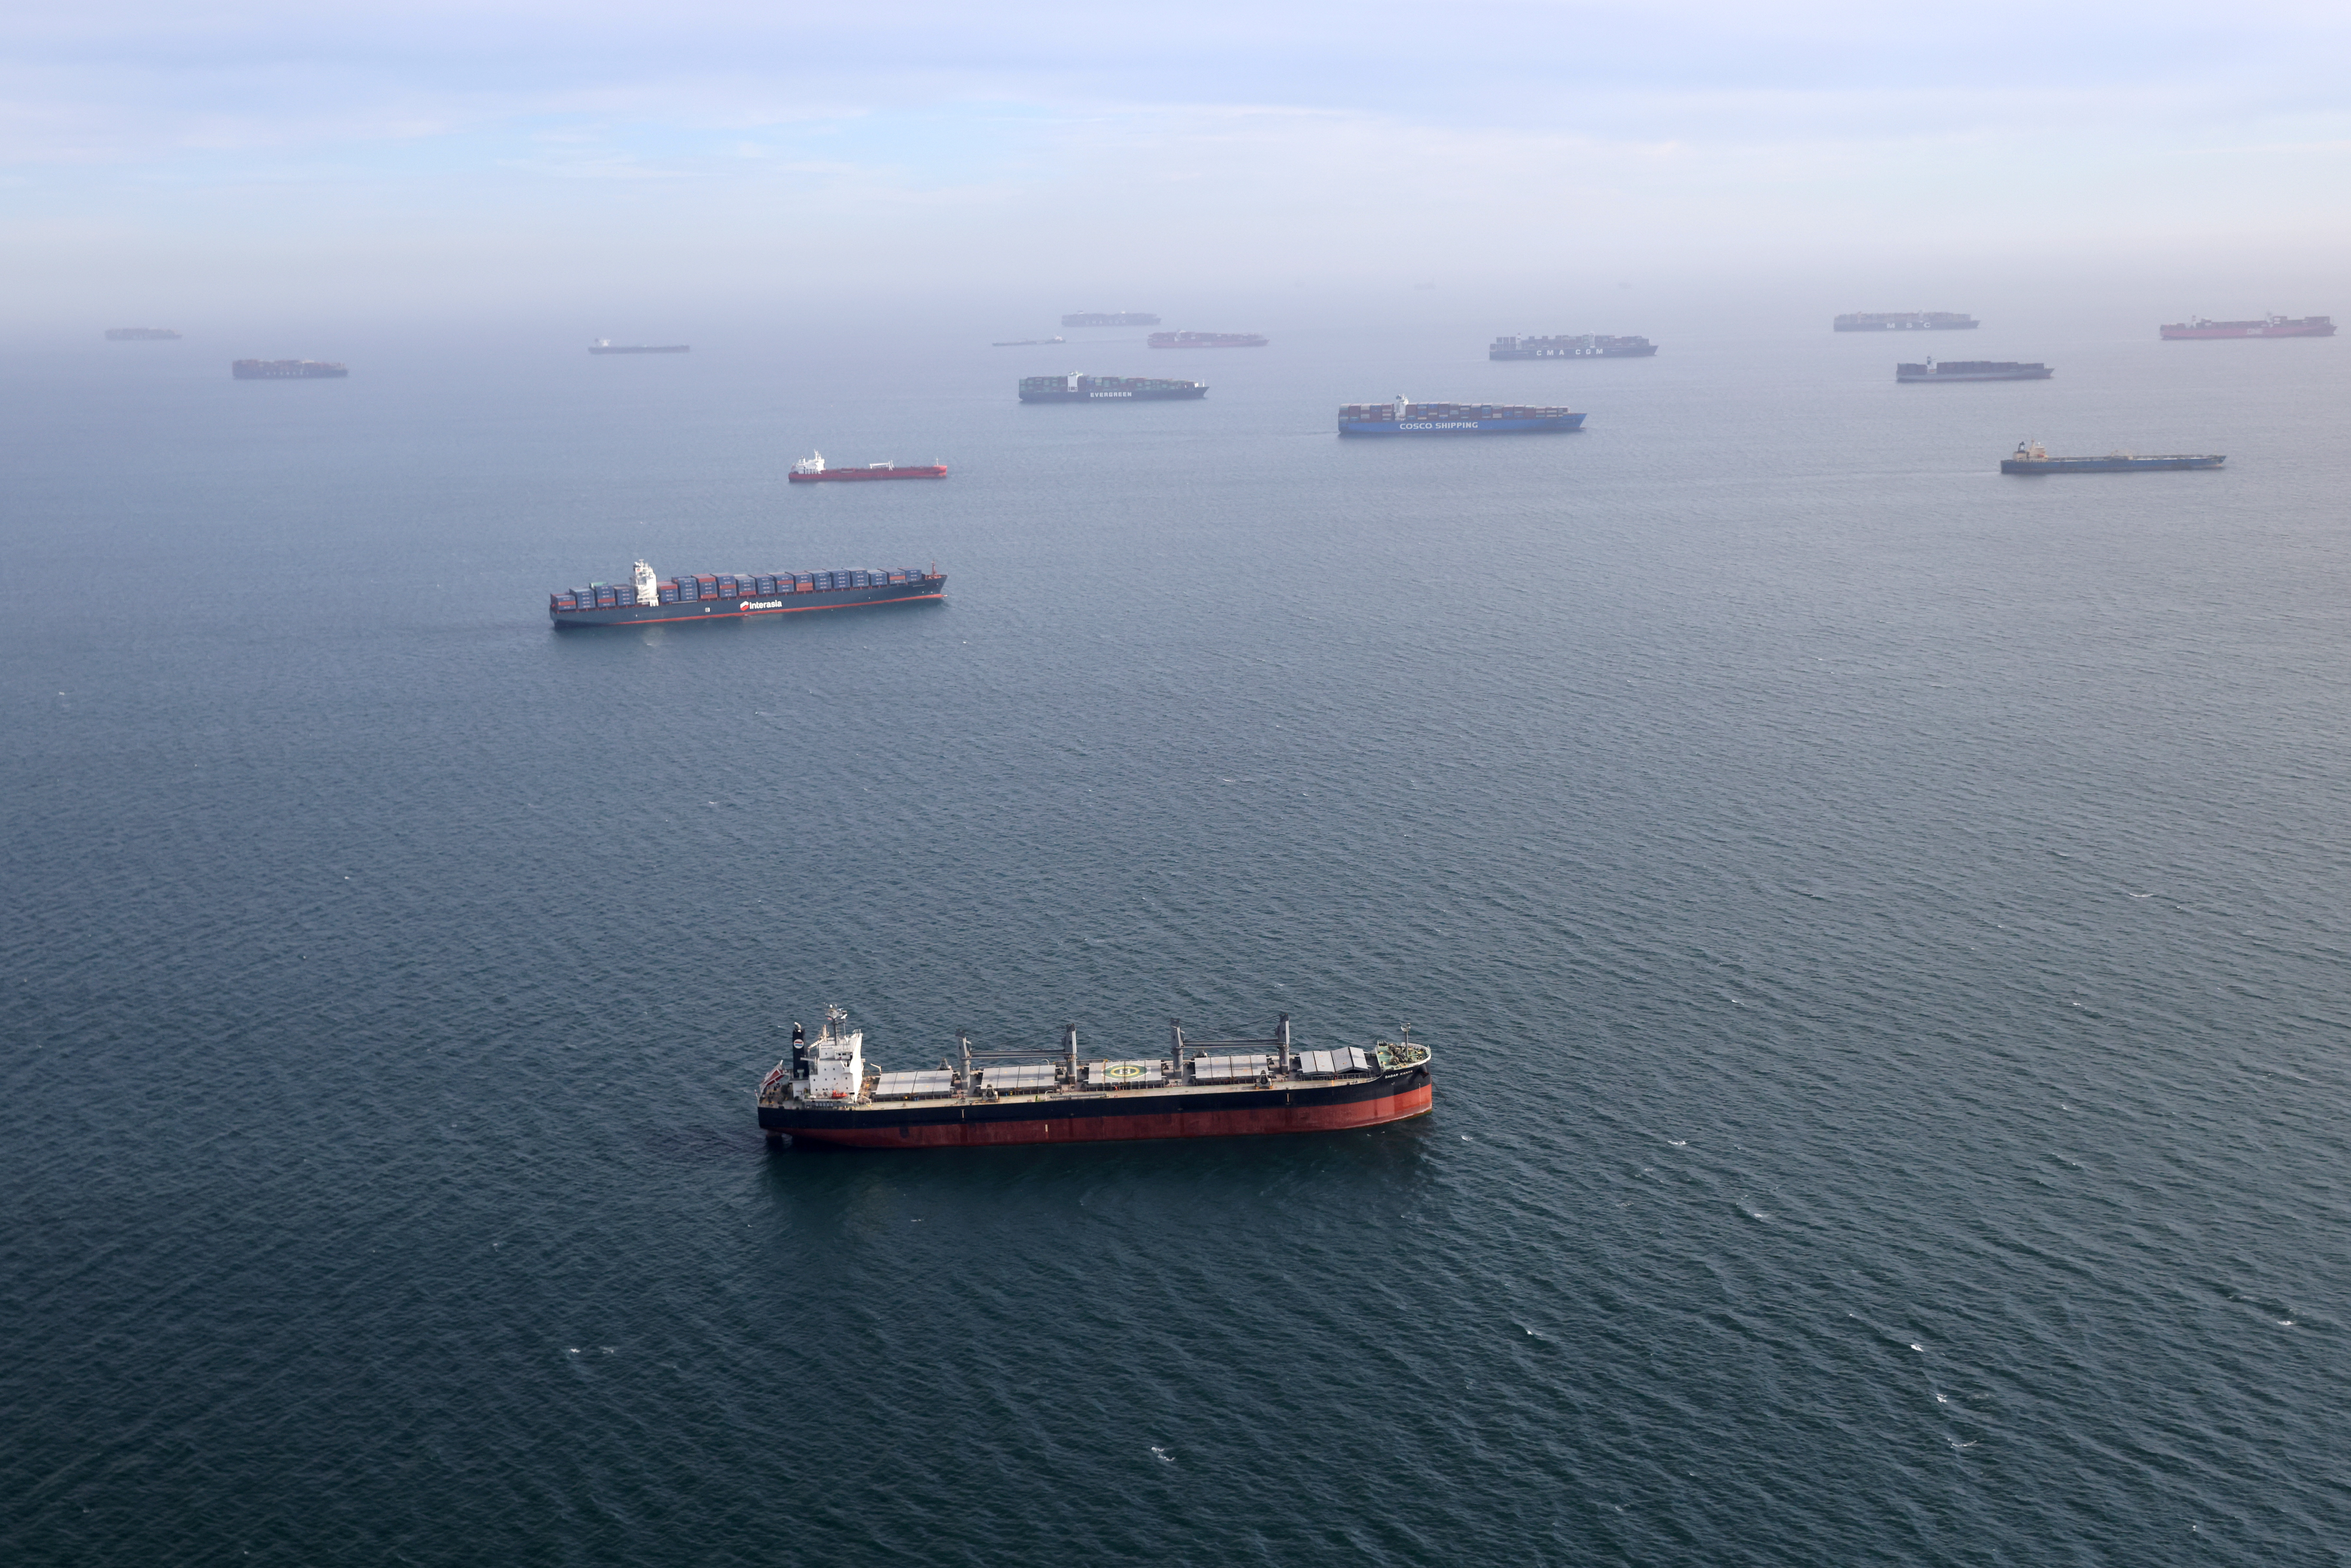 Container ships and oil tankers wait in the ocean outside the Port of Long Beach-Port of Los Angeles complex, amid the coronavirus disease (COVID-19) pandemic, in Los Angeles, California, U.S., April 7, 2021. REUTERS/Lucy Nicholson/File Photo